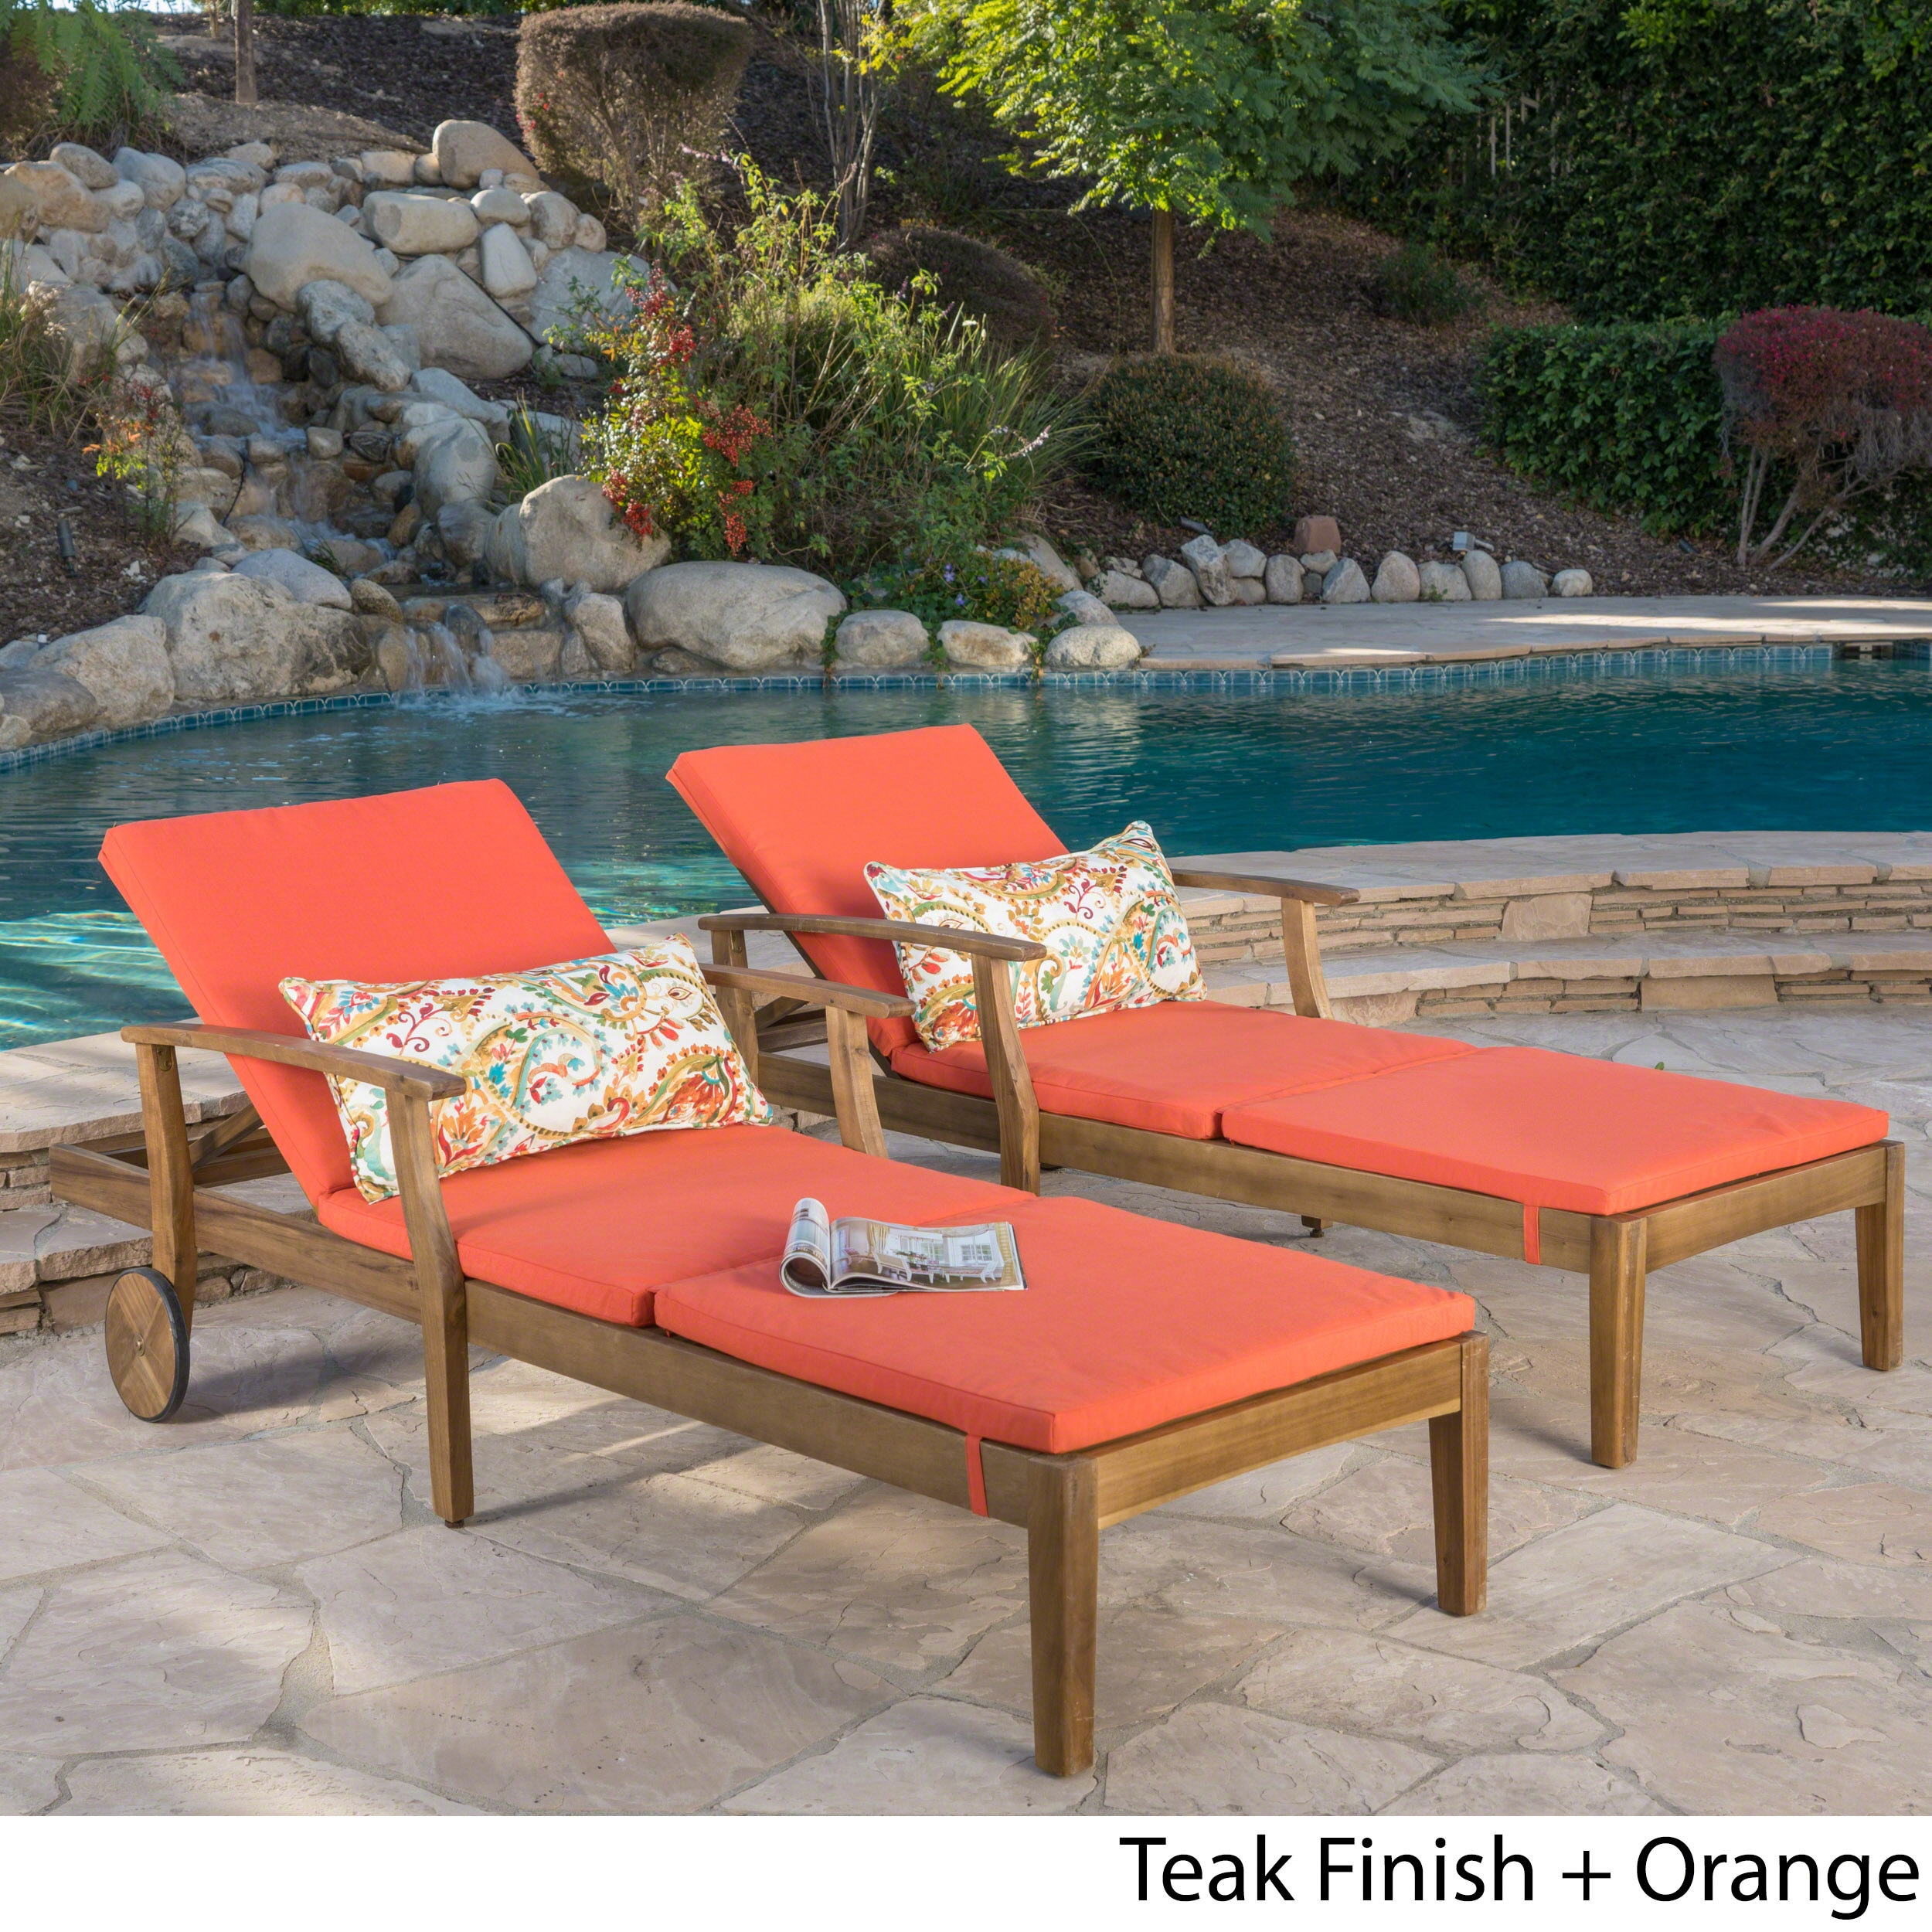 acff0032d98 ... Christopher Knight Home On Perla Outdoor Acacia Wood Chaise Lounge With  Cushion Set Of 2